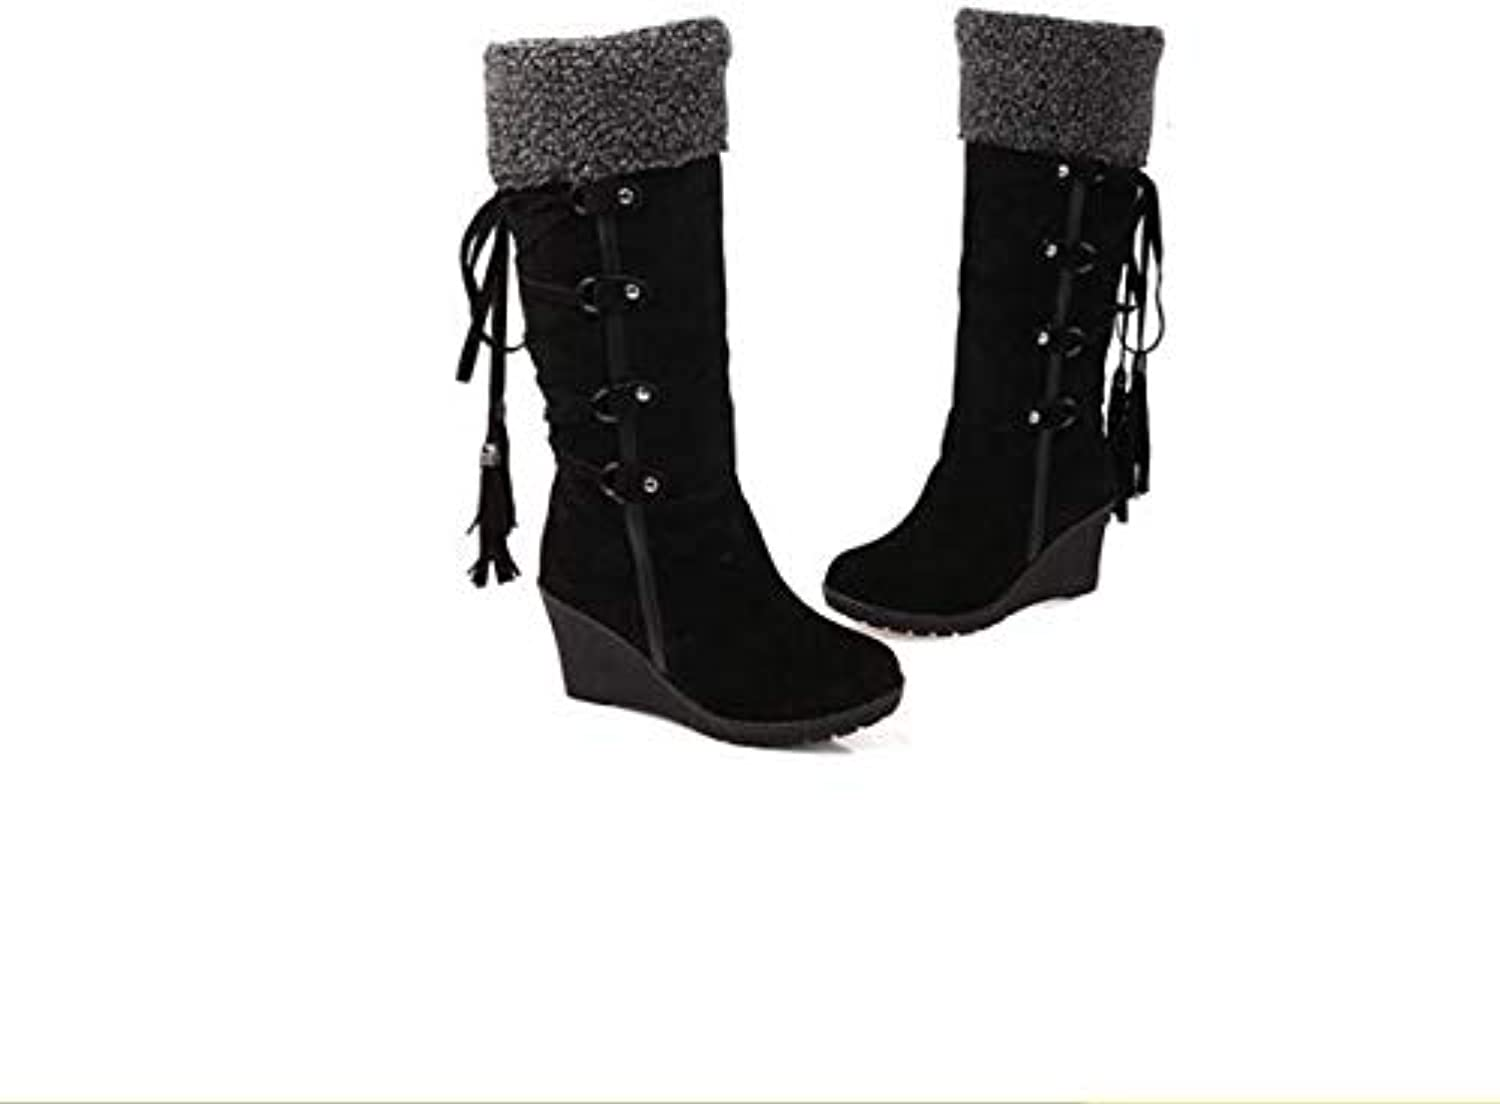 Top Shishang Winter Female Wedge Artificial Fur high Boots Snow Boots Warm Lined lace Martin Boots